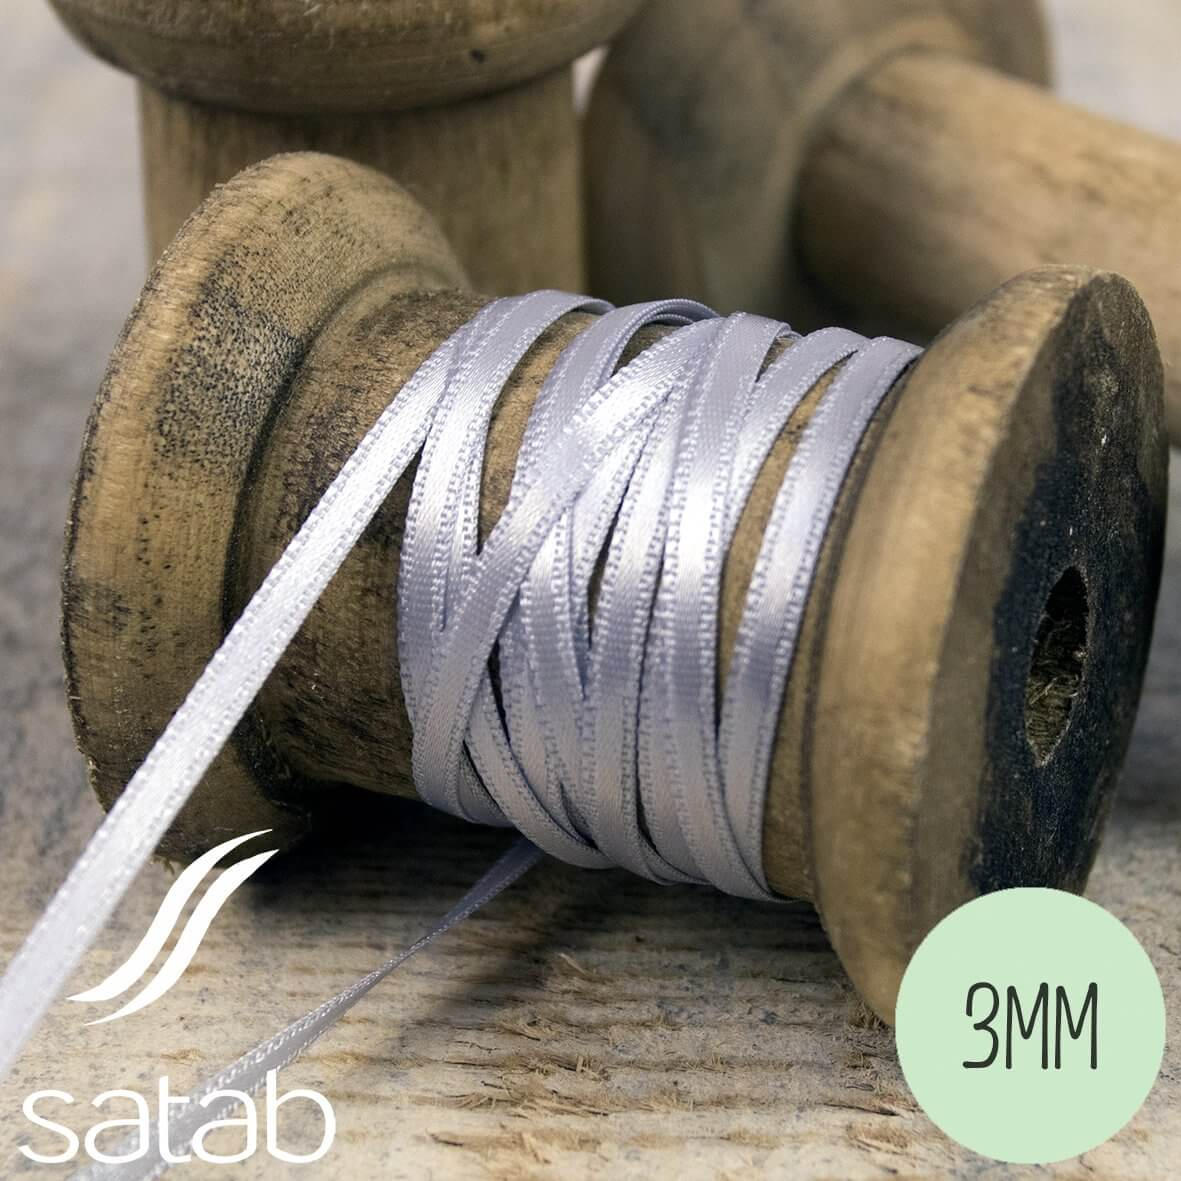 Satab Satin Ribbon 3mm